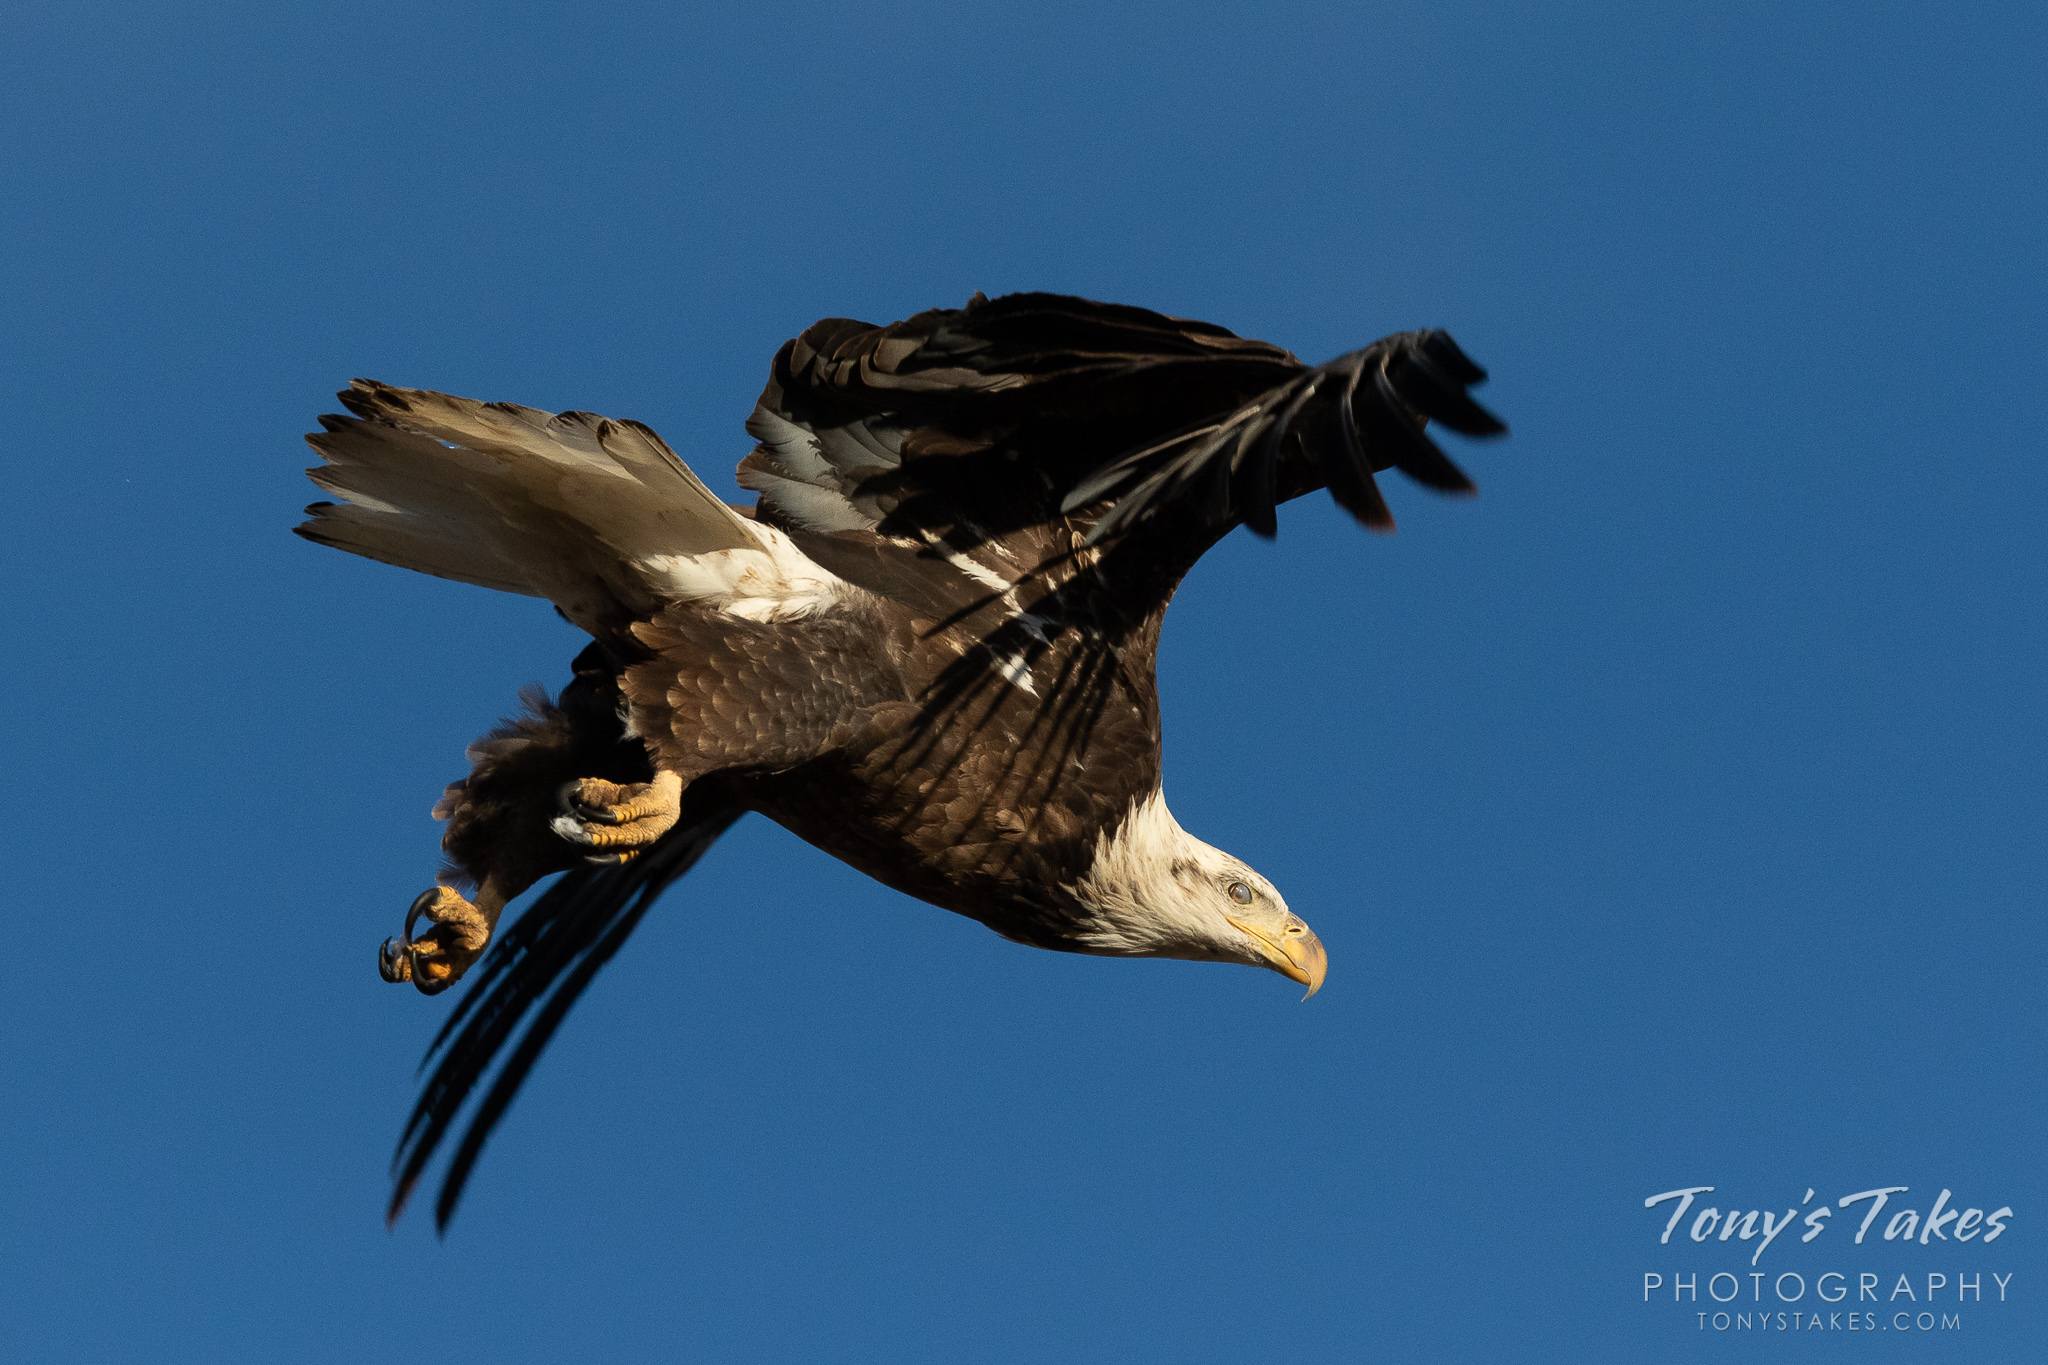 On the hunt! A young bald eagle dives toward its prey on the plains of Colorado